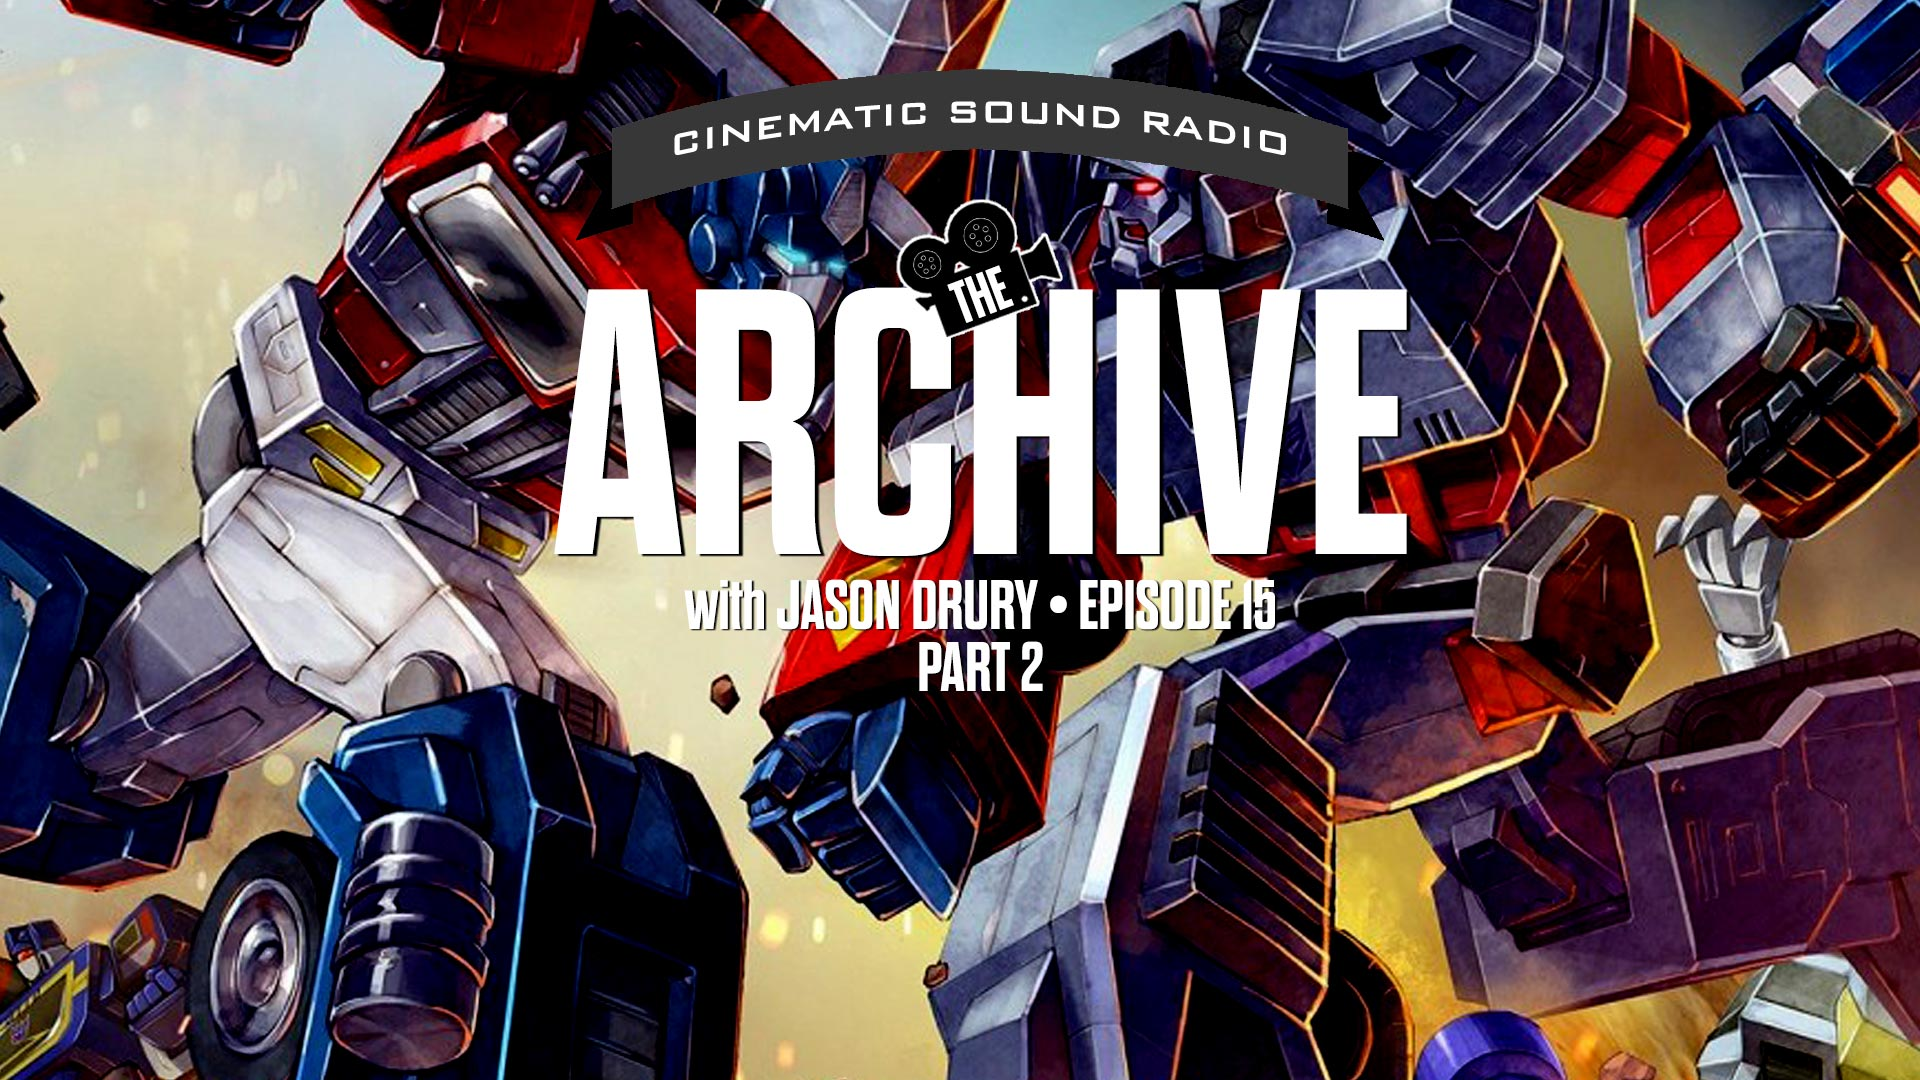 THE ARCHIVE WITH JASON DRURY: EPISODE FIFTEEN - PART 2